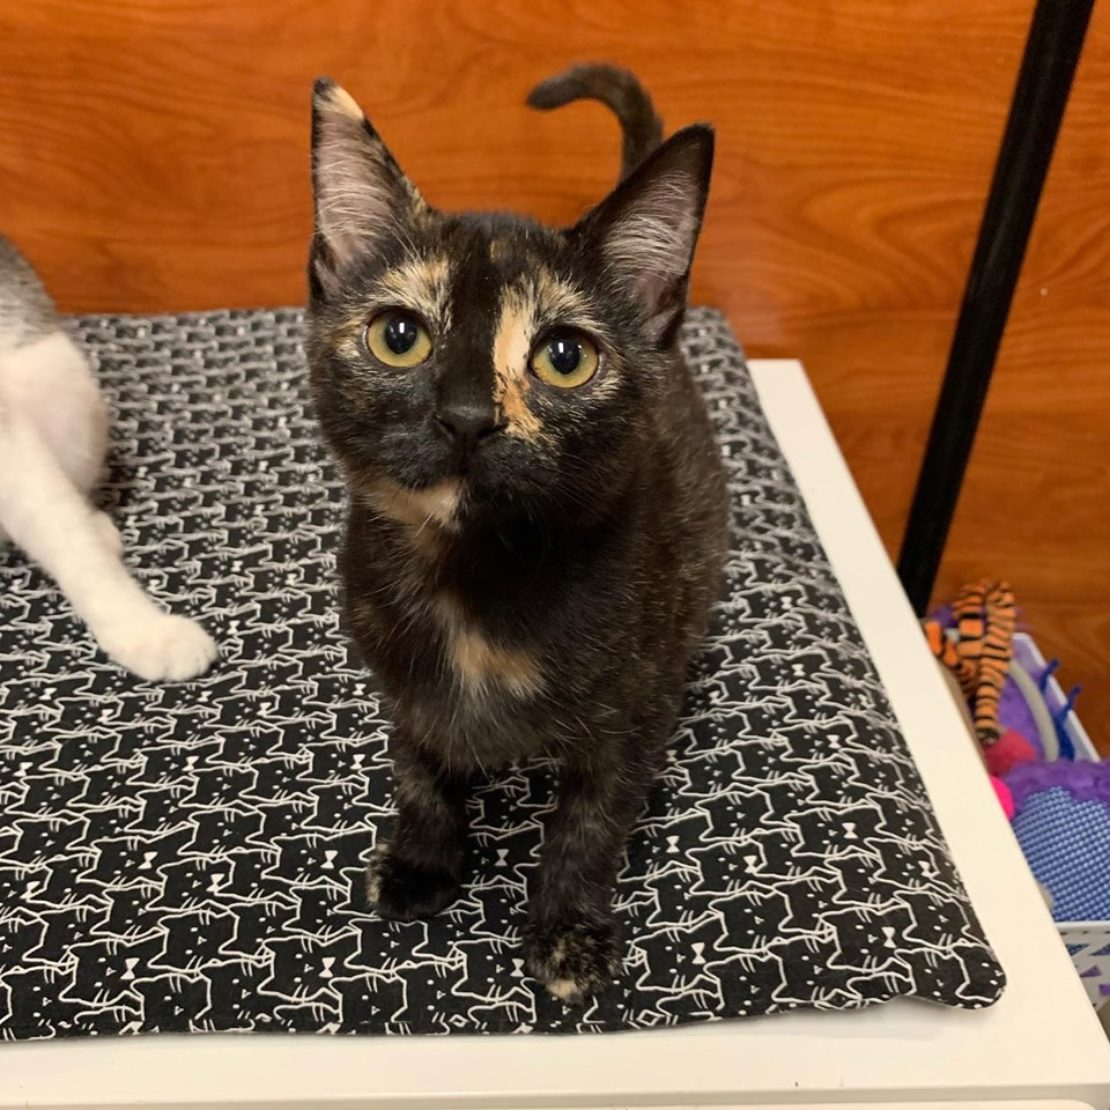 tortie kitten looks up from a bed.